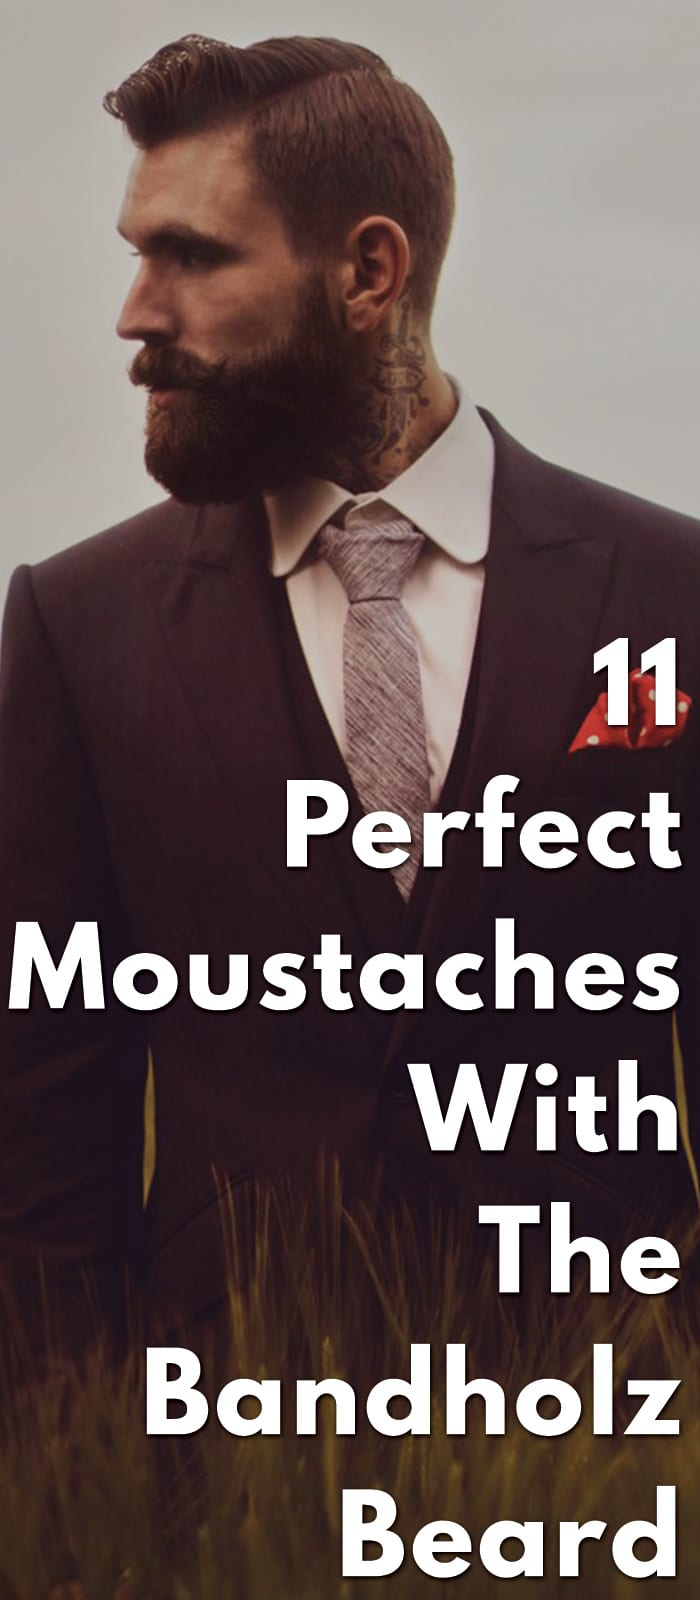 11-Perfect-Moustaches-With-The-Bandholz-Beard